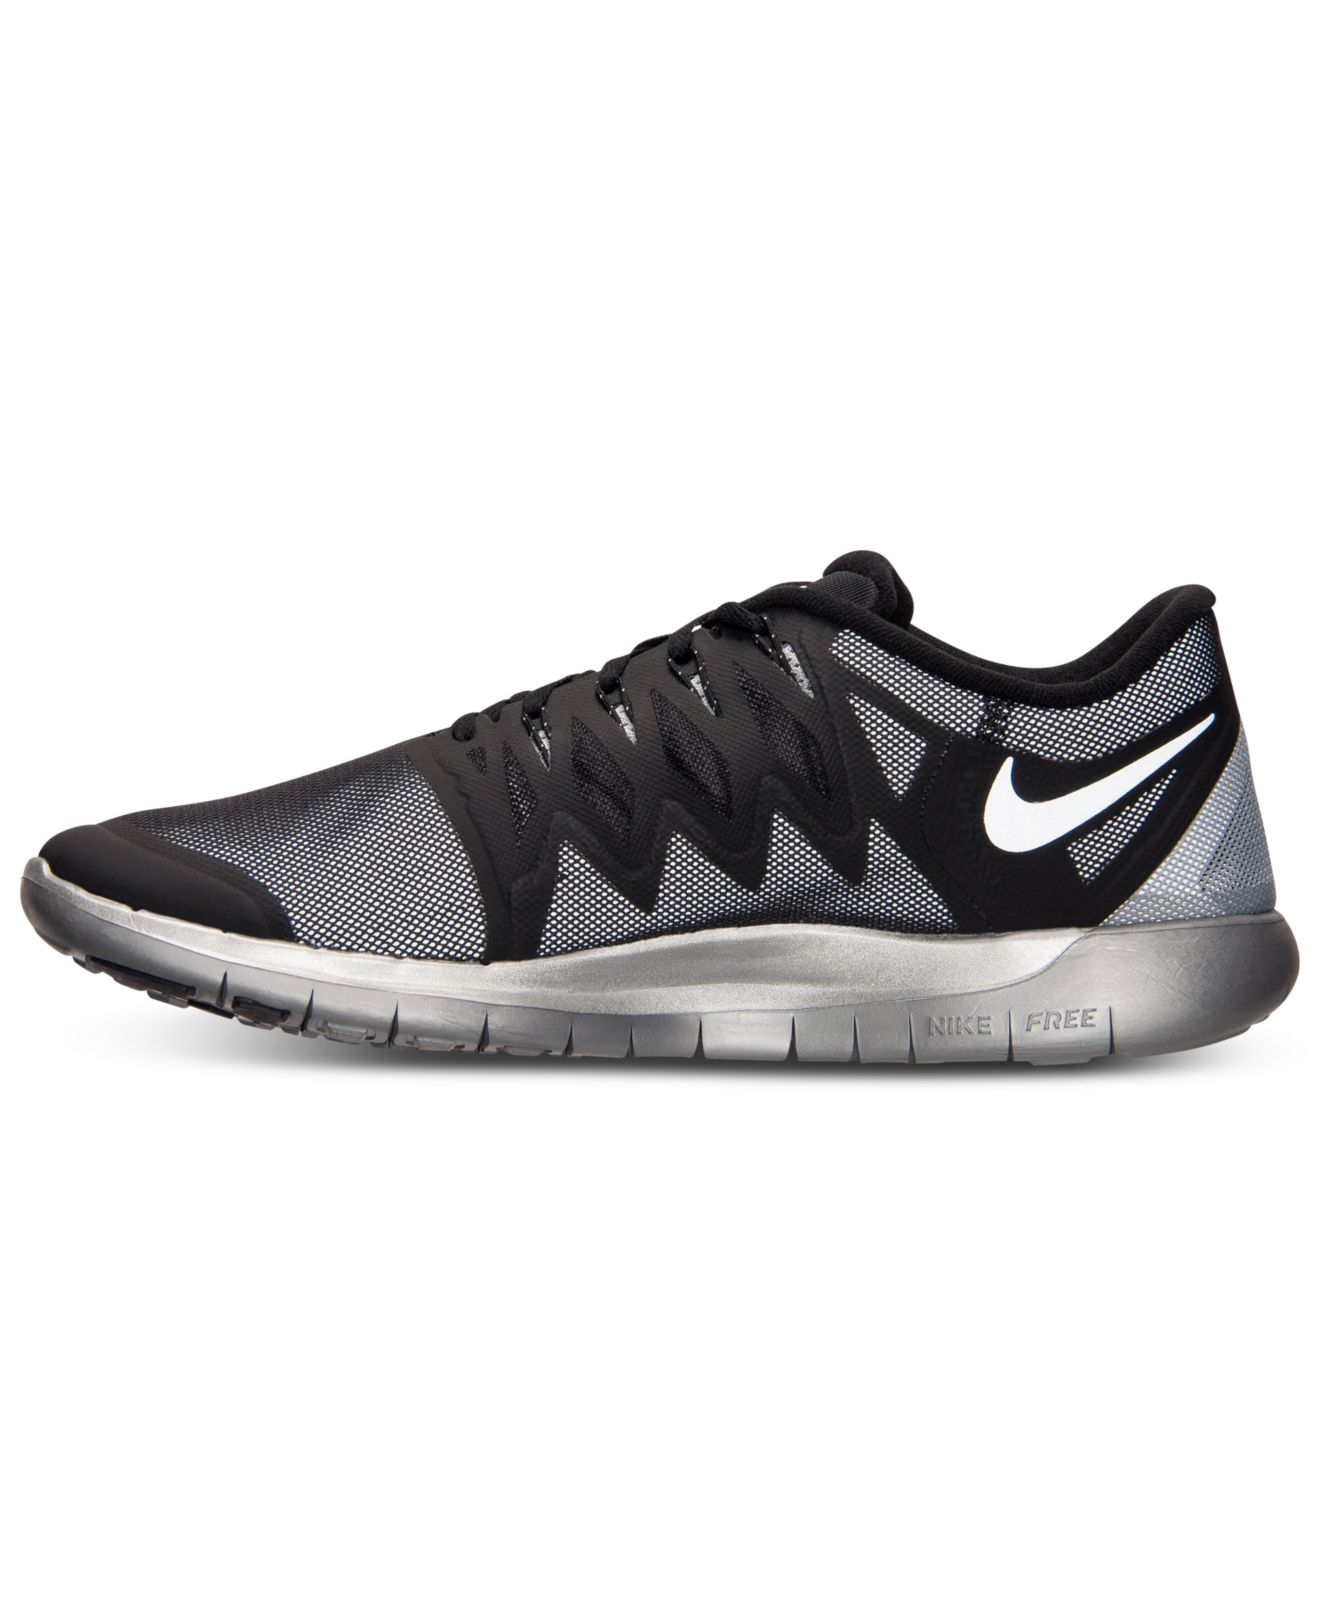 outlet store 92ebb 10aad ... Black Friday mens nike free 5.0 finish line free 5.0 v4 review runner s  world nike free run ...